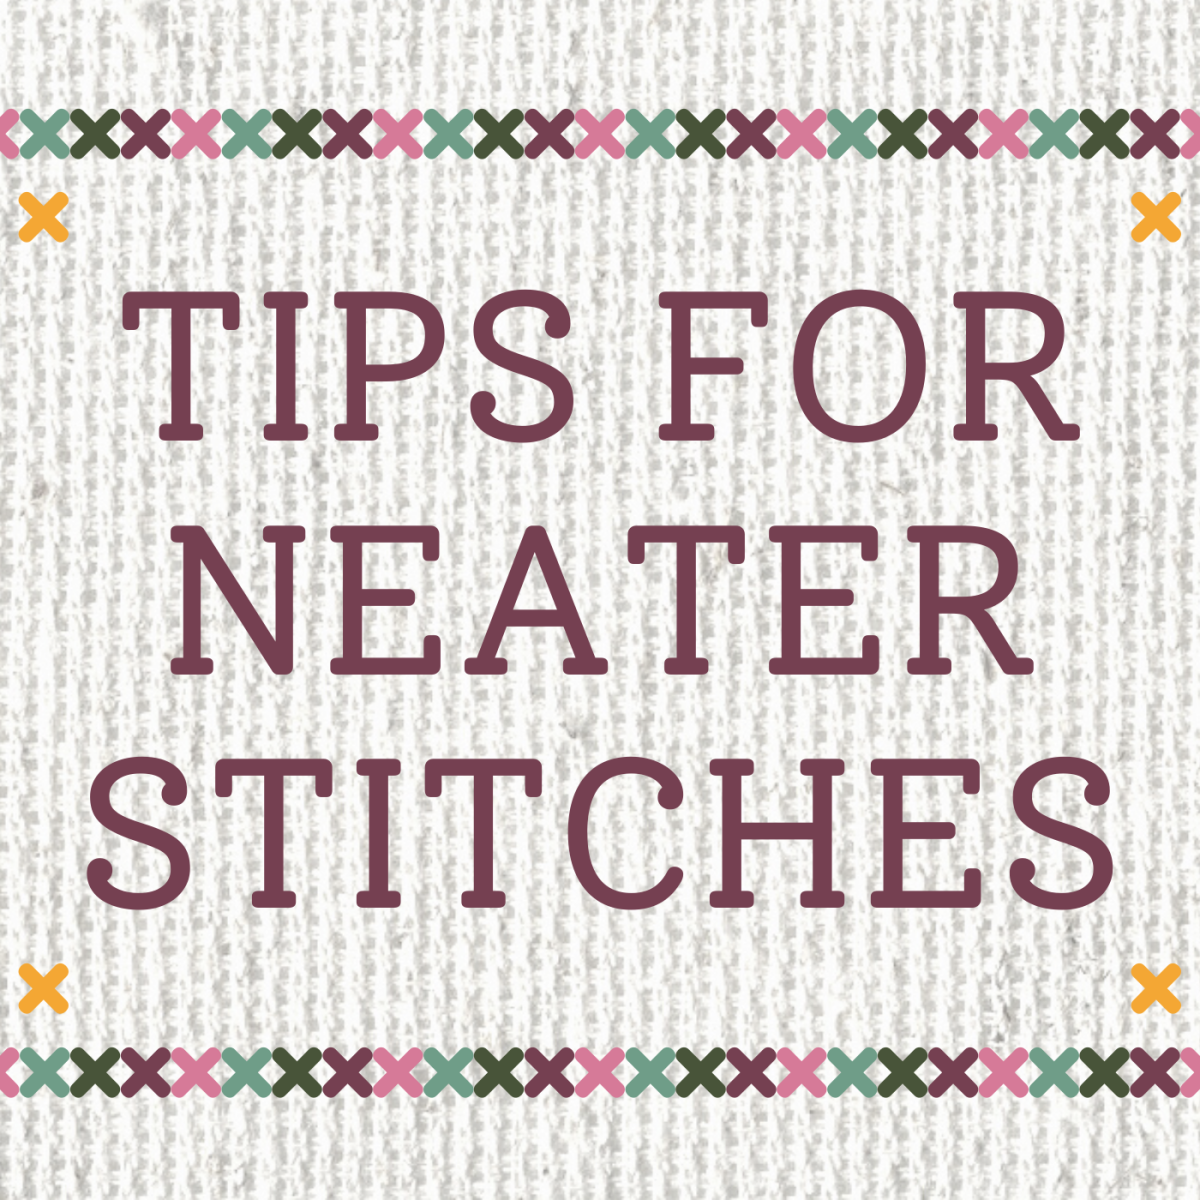 Learn about three techniques to keep your cross stitch laying flat and looking nice.